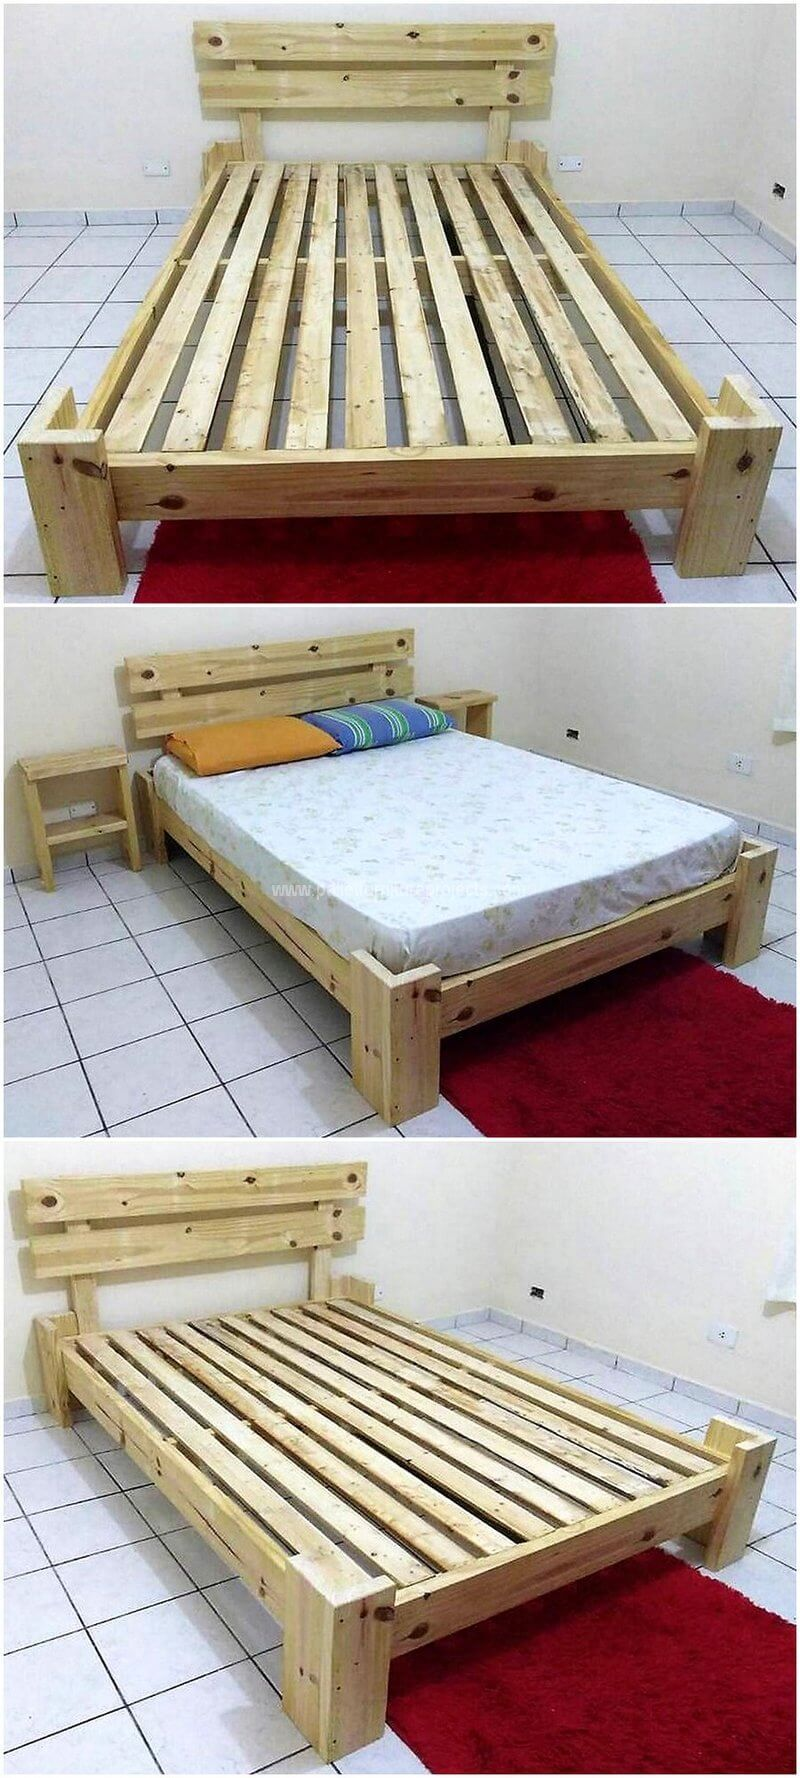 Awesome Wooden Pallets Recycling Ideas Pallet Projects Furniture Wooden Pallet Beds Wood Pallet Beds